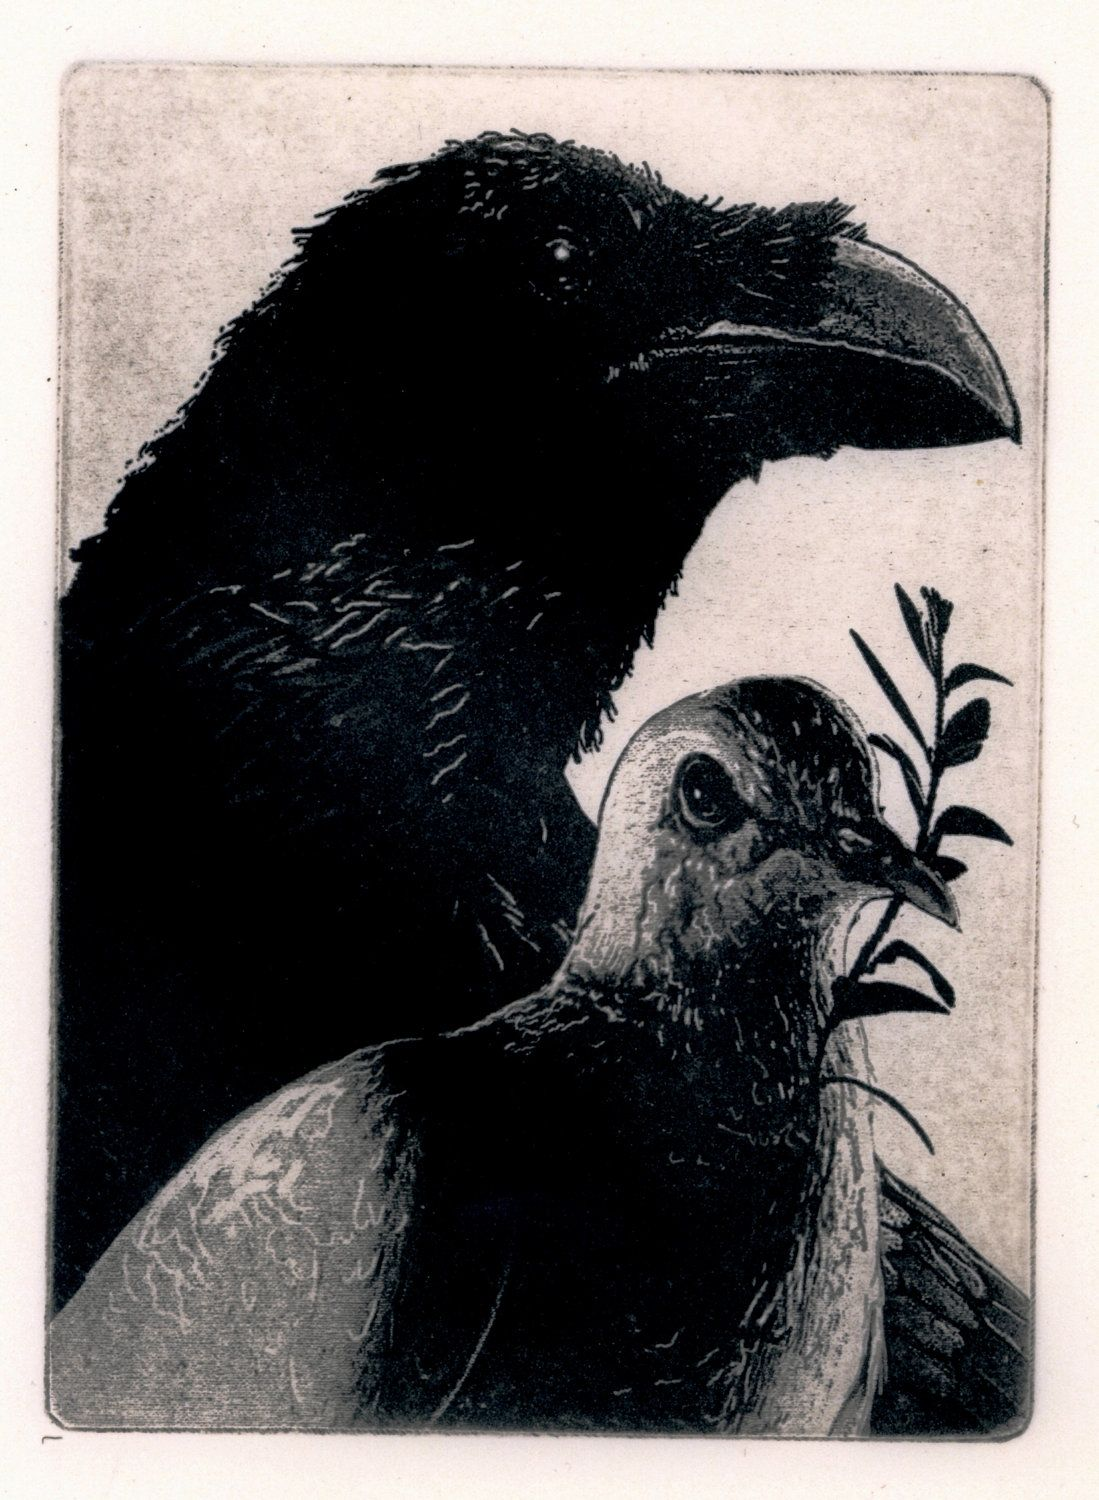 Sale-Noahs birds - GENESIS AND GILGAMESH and The Great Flood. Raven (birds, dove, Bible, crow) Series-  -  Intaglio Etching. 5 x 7 inch 2010. $25.00, via Etsy.